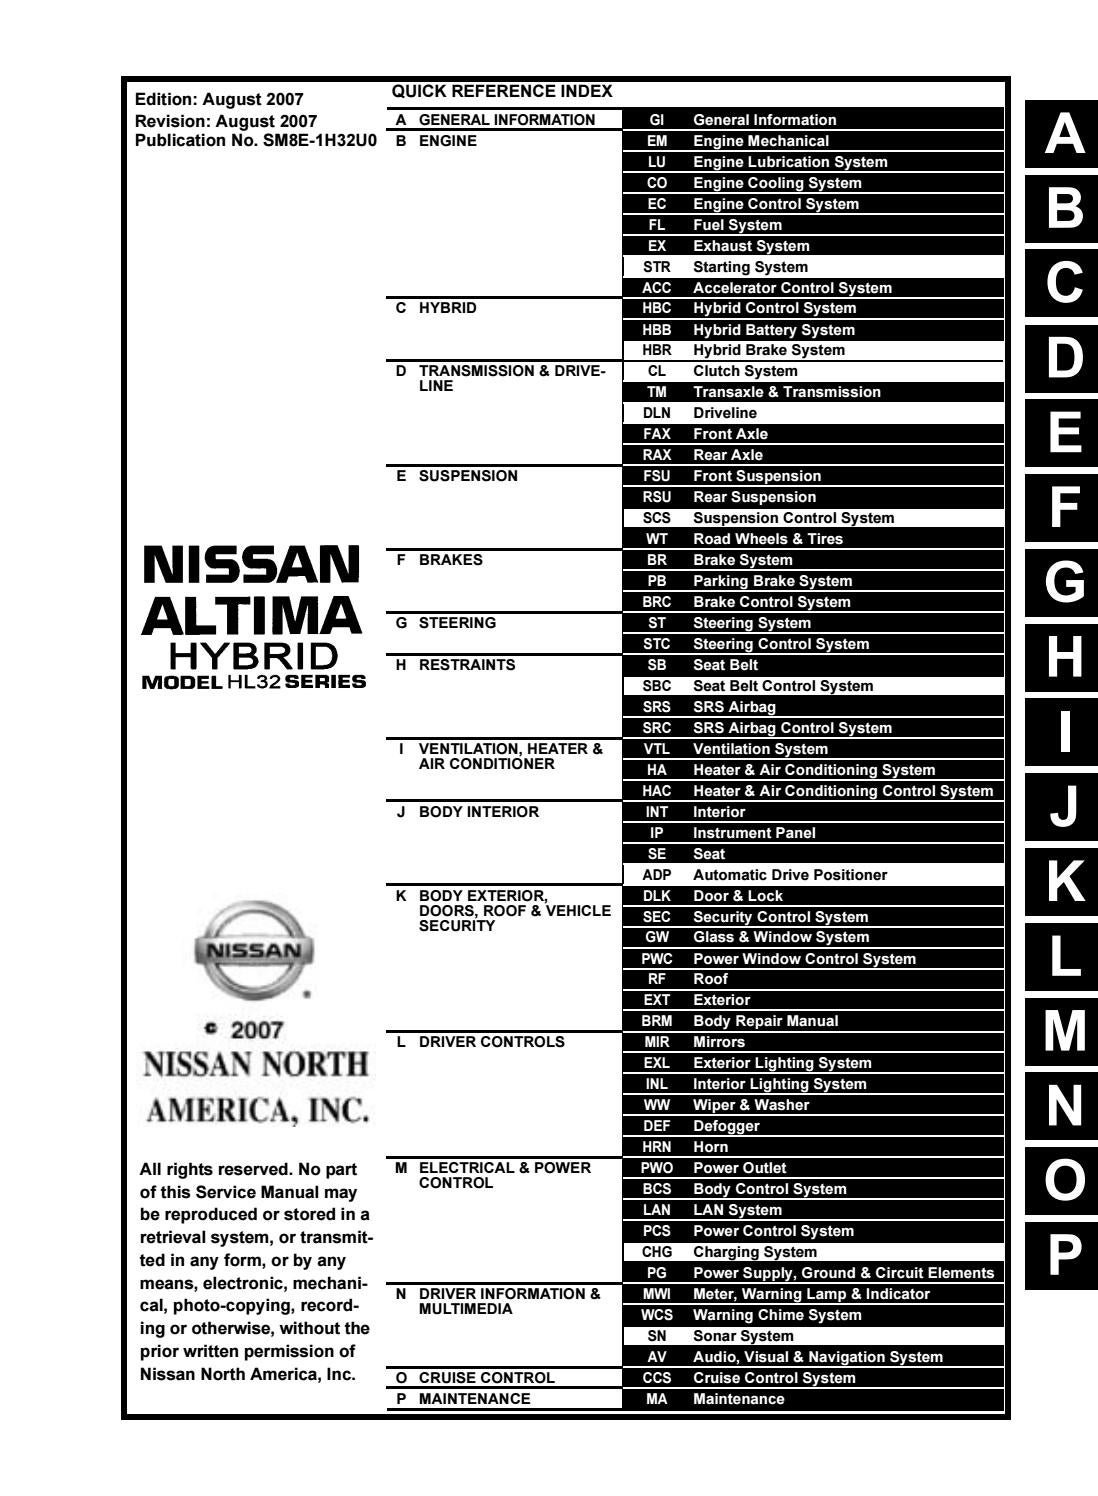 Nissan Rogue Service Manual: SRS air bag warning lamp does not turn on